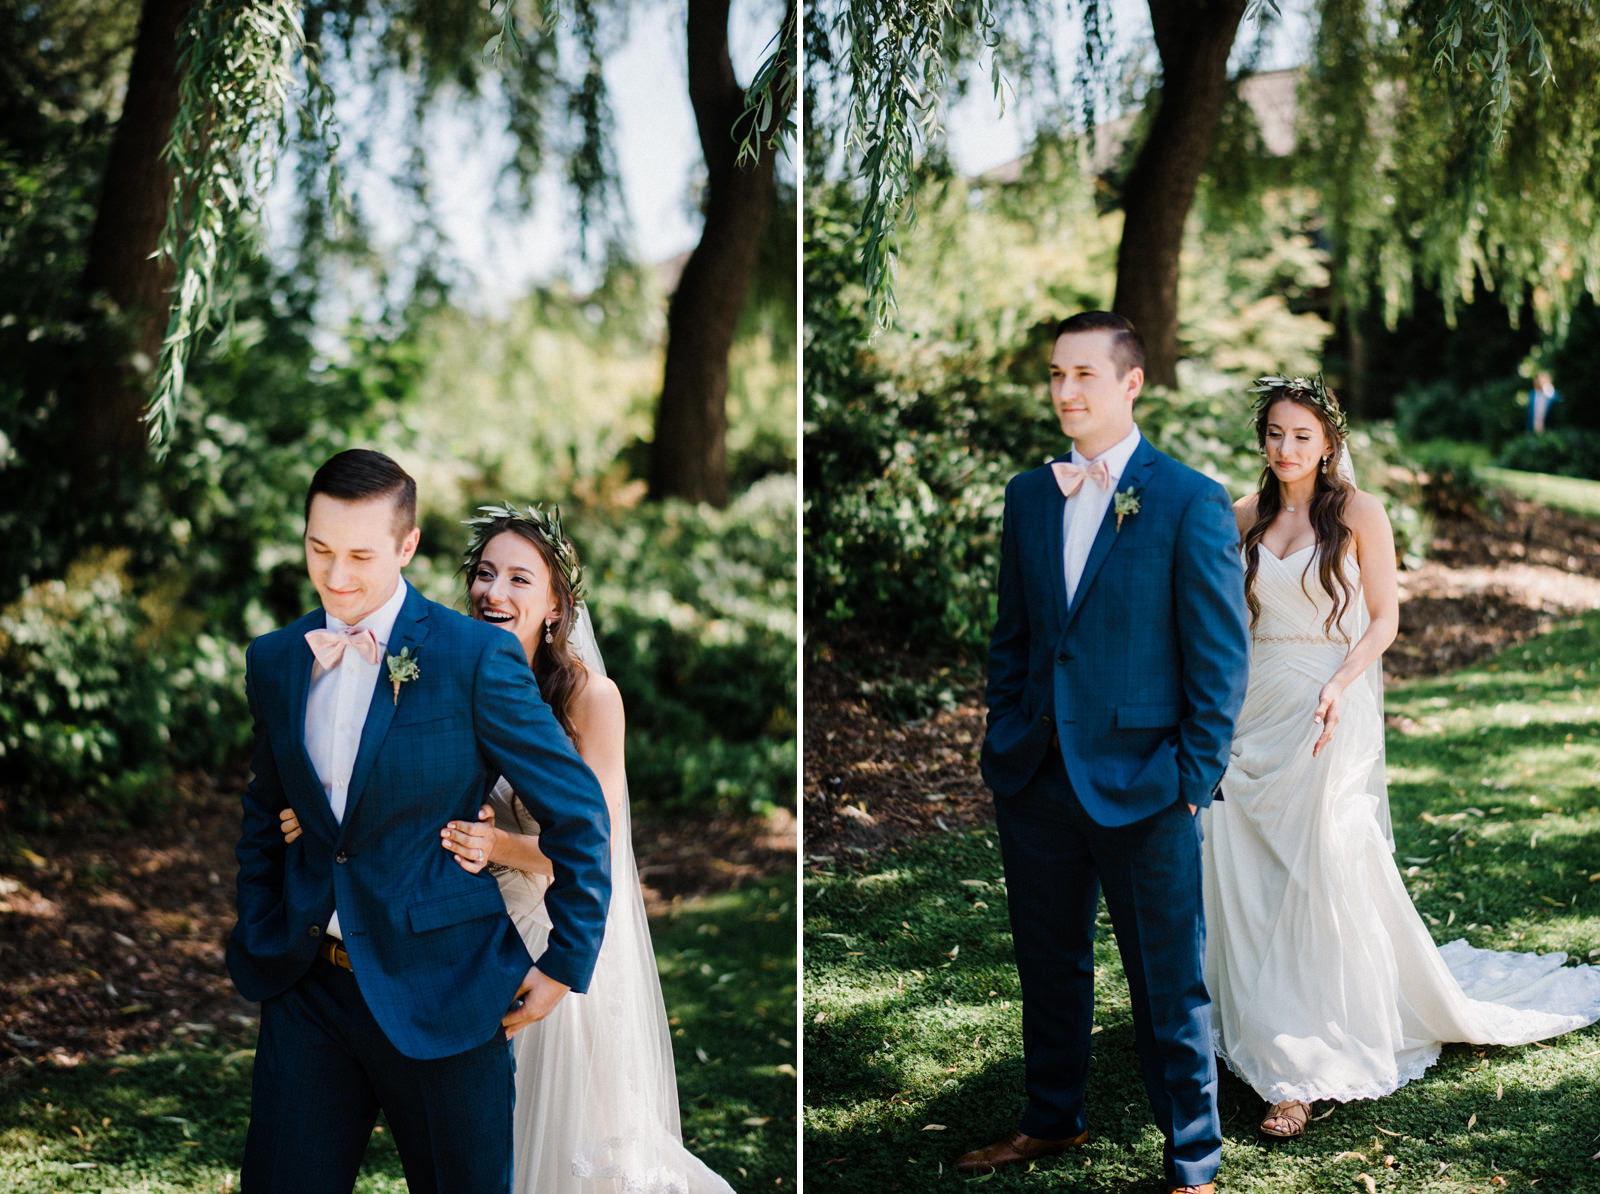 025-an-emotional-groom-crying-during-his-first-look-with-his-bride.jpg